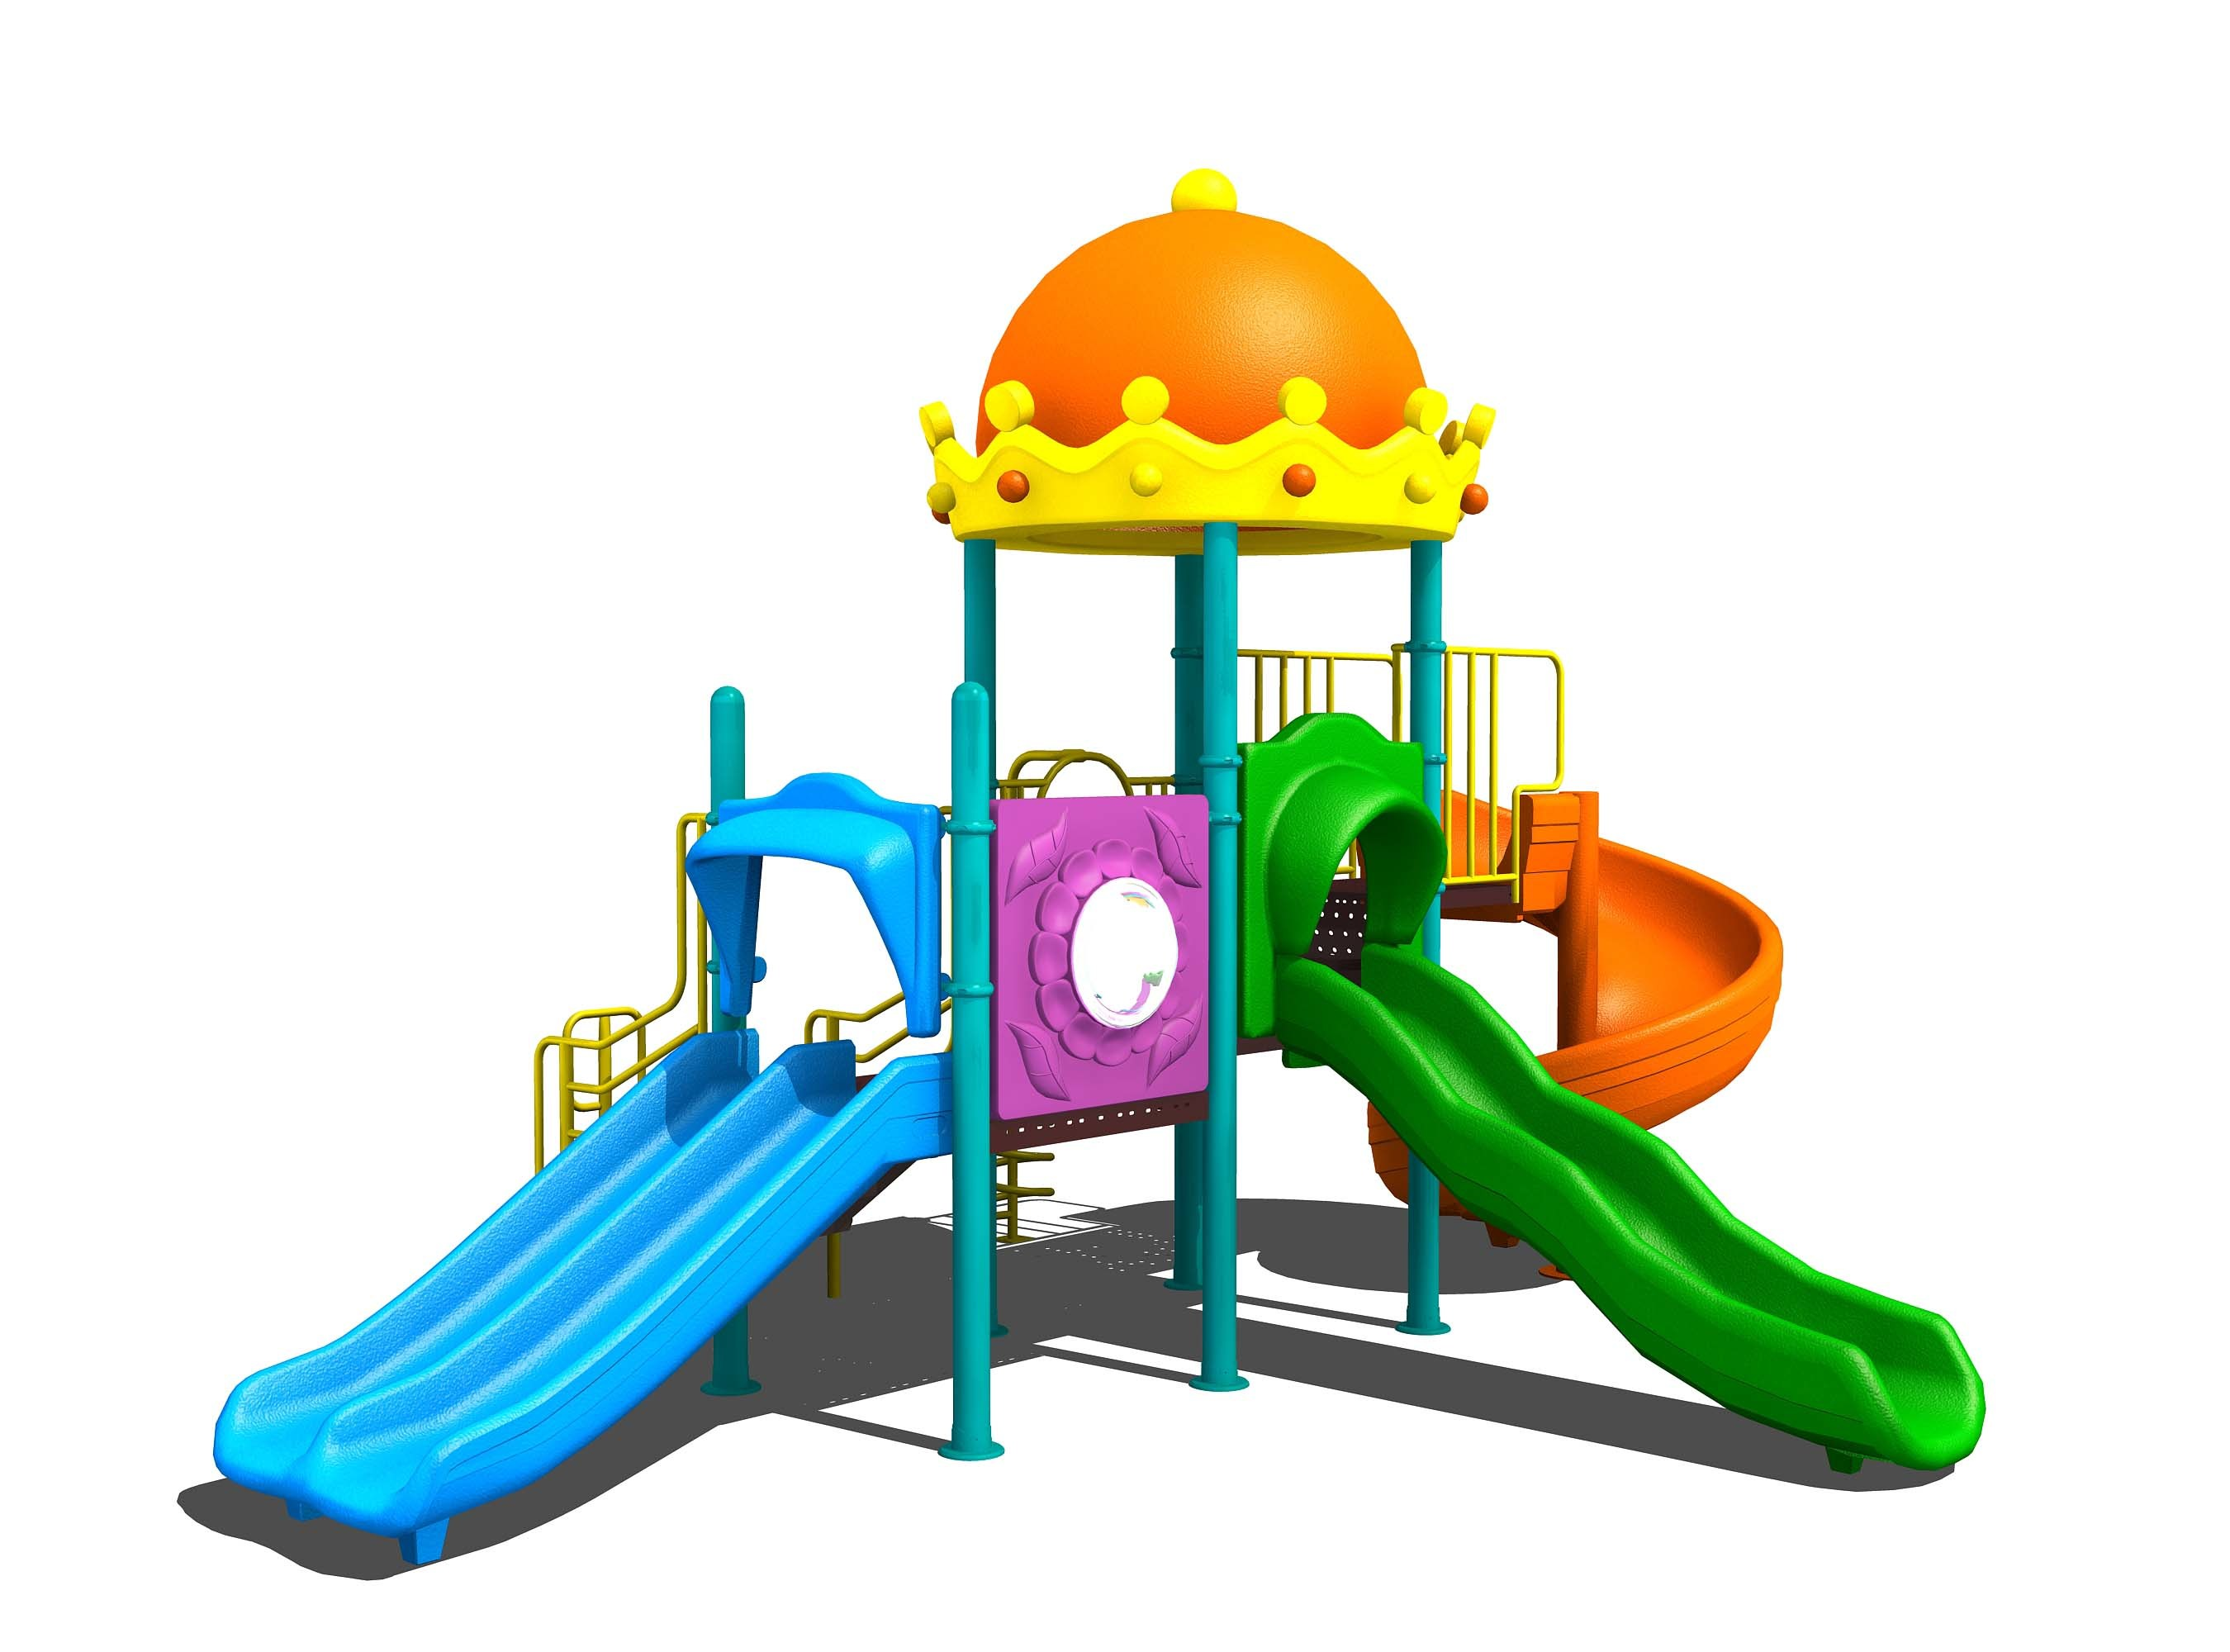 beston amusement park rides buying a commercial playground equipment. Black Bedroom Furniture Sets. Home Design Ideas